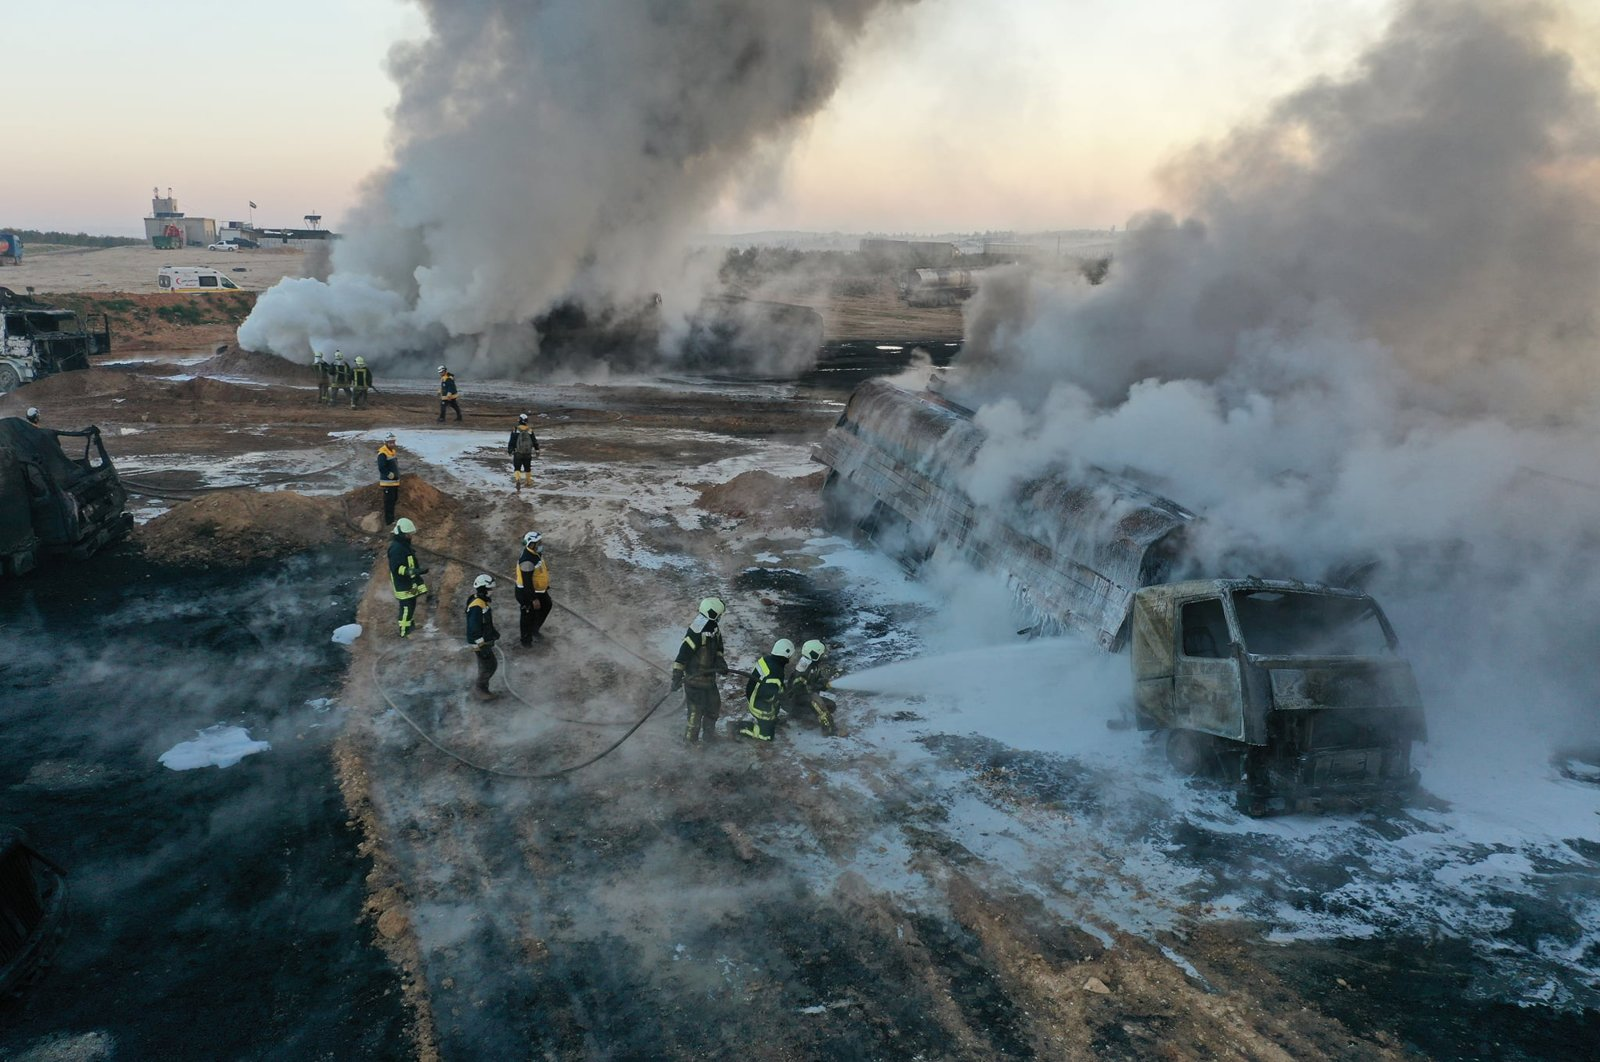 In this photo provided by the Syrian Civil Defense group known as the White Helmets, civil defense workers extinguish burning oil tanker trucks after a suspected missile strike around the towns of Jarablus and al-Bab, near the border with Turkey, in western Aleppo province, Syria, March 6, 2021. (AP Photo)